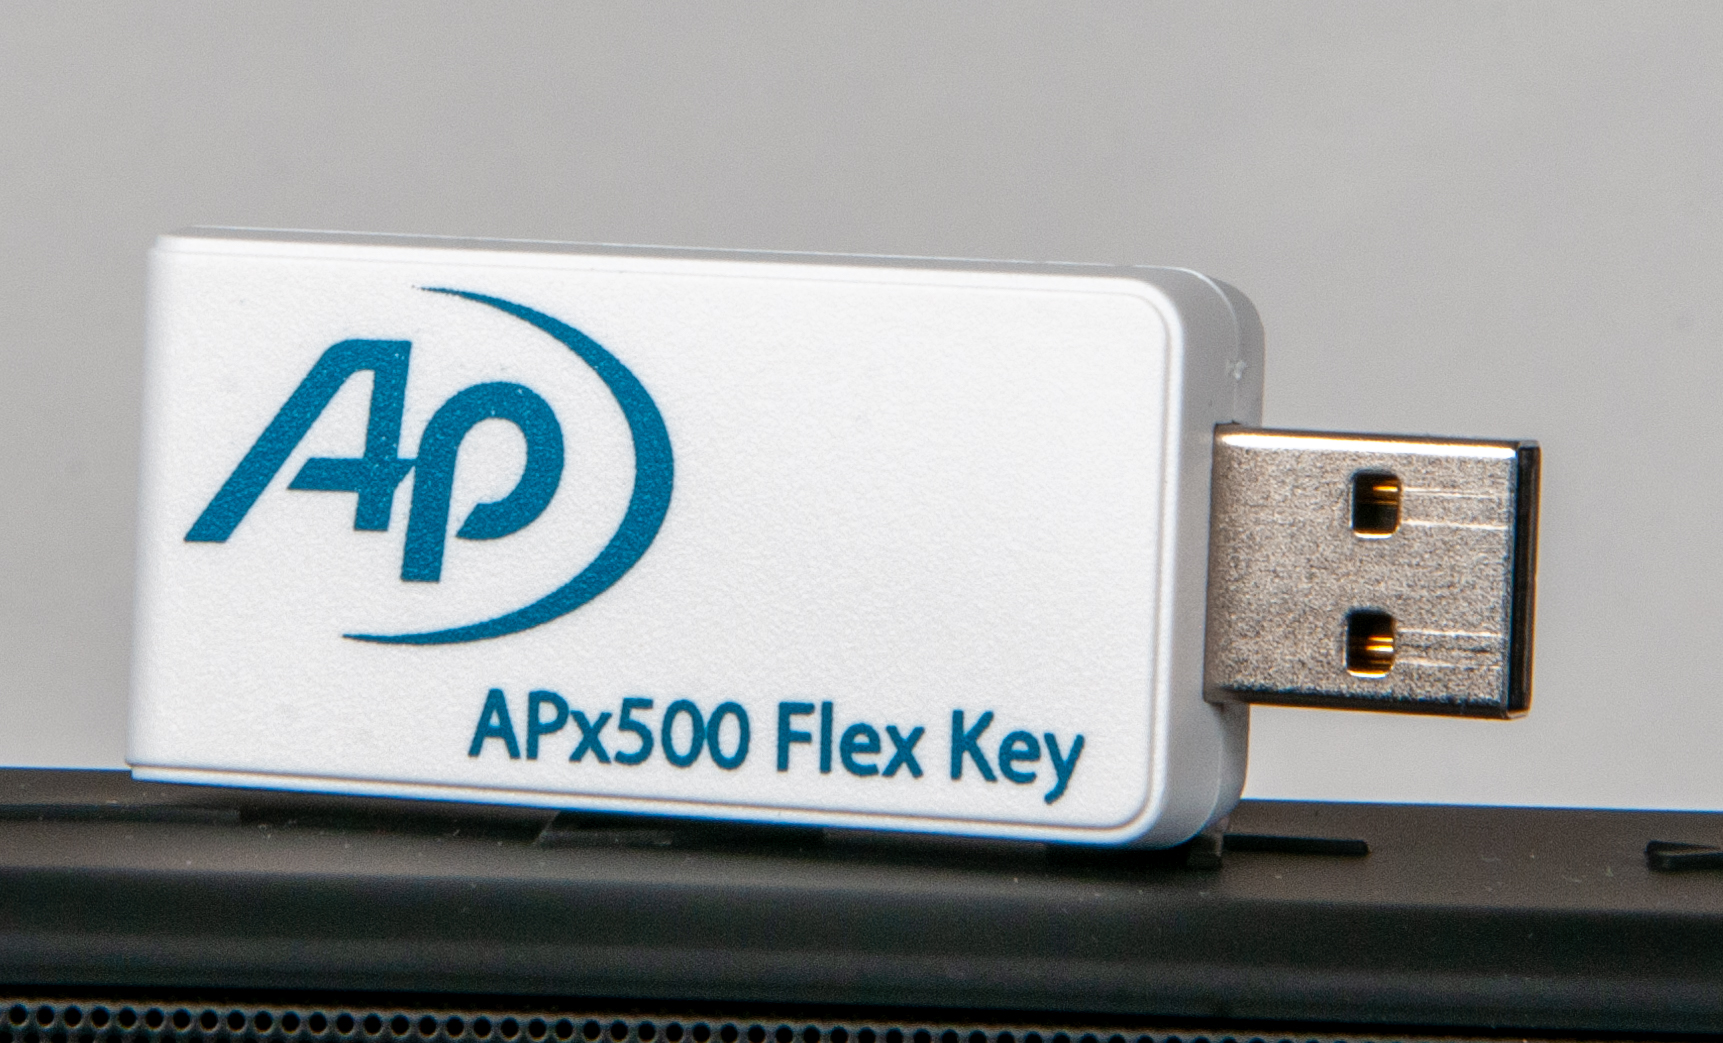 APx 500 Flex key